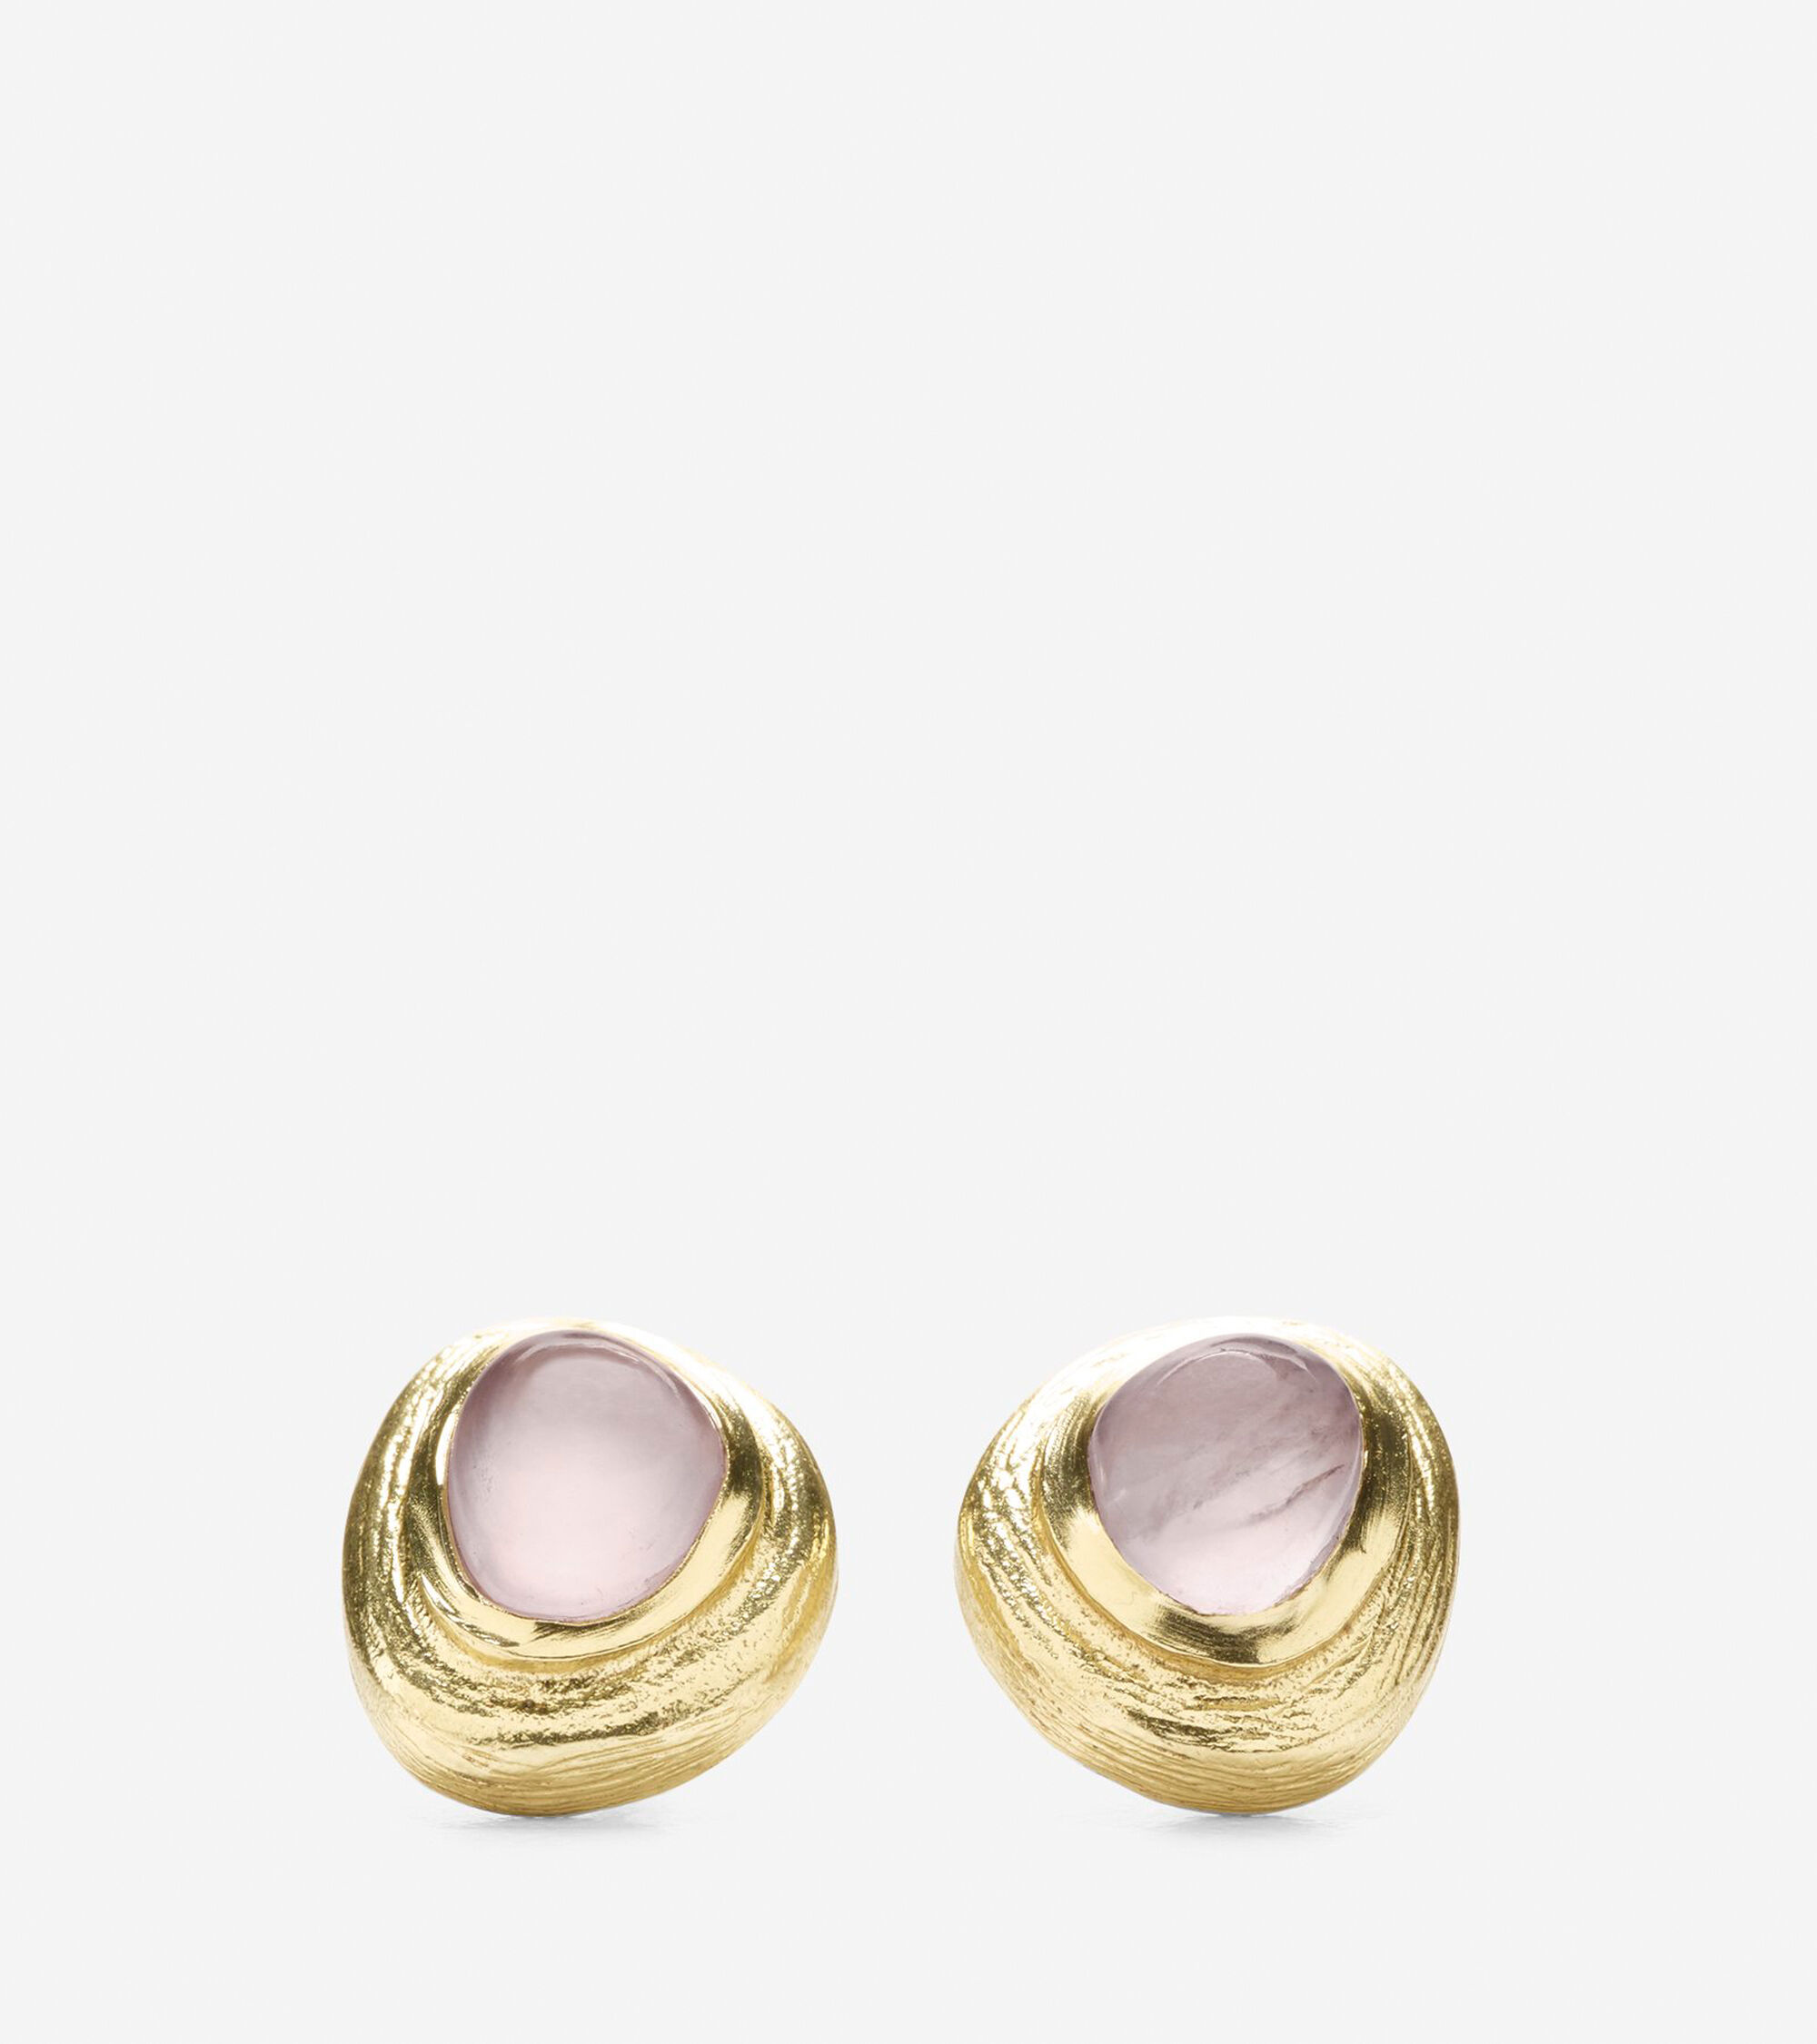 Accessories > Metal Border Semi-Precious Stone Stud Earring